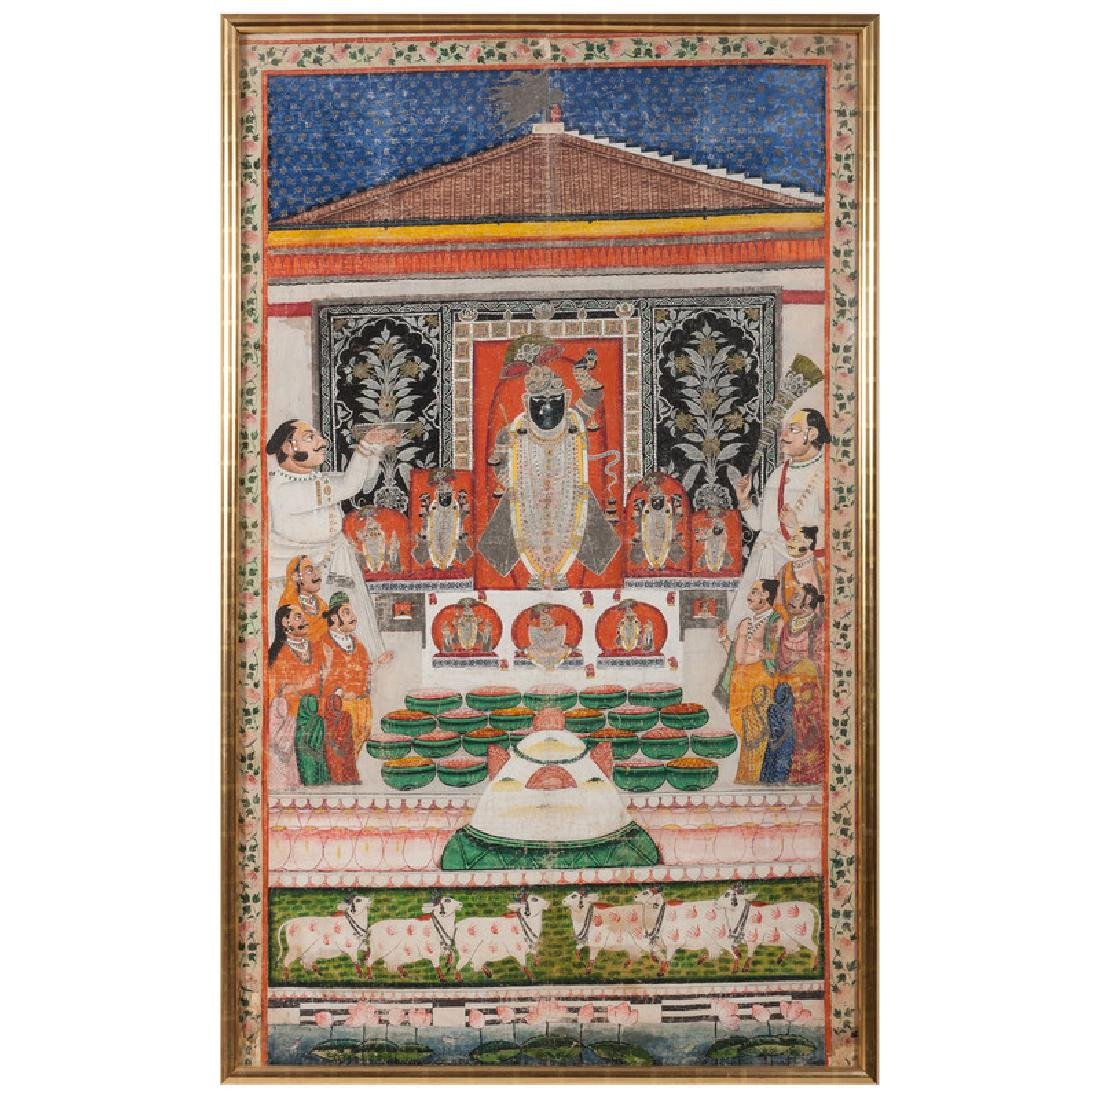 Monumental Indian Painting on Silk